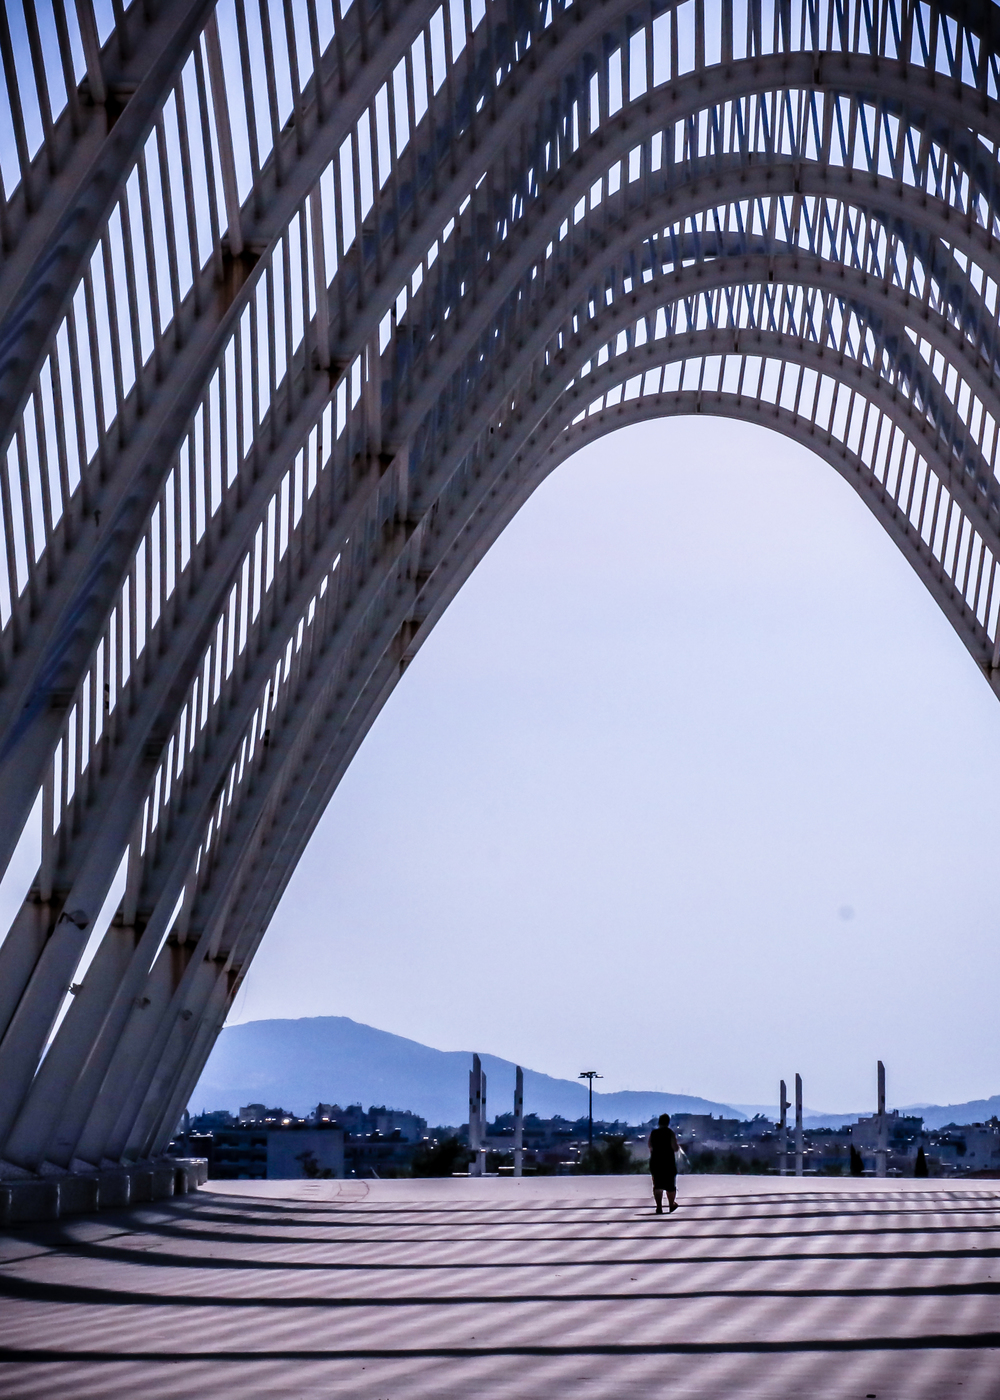 The arches at the Olympic Athletic Center of Athens (Photo:Valev Laube)